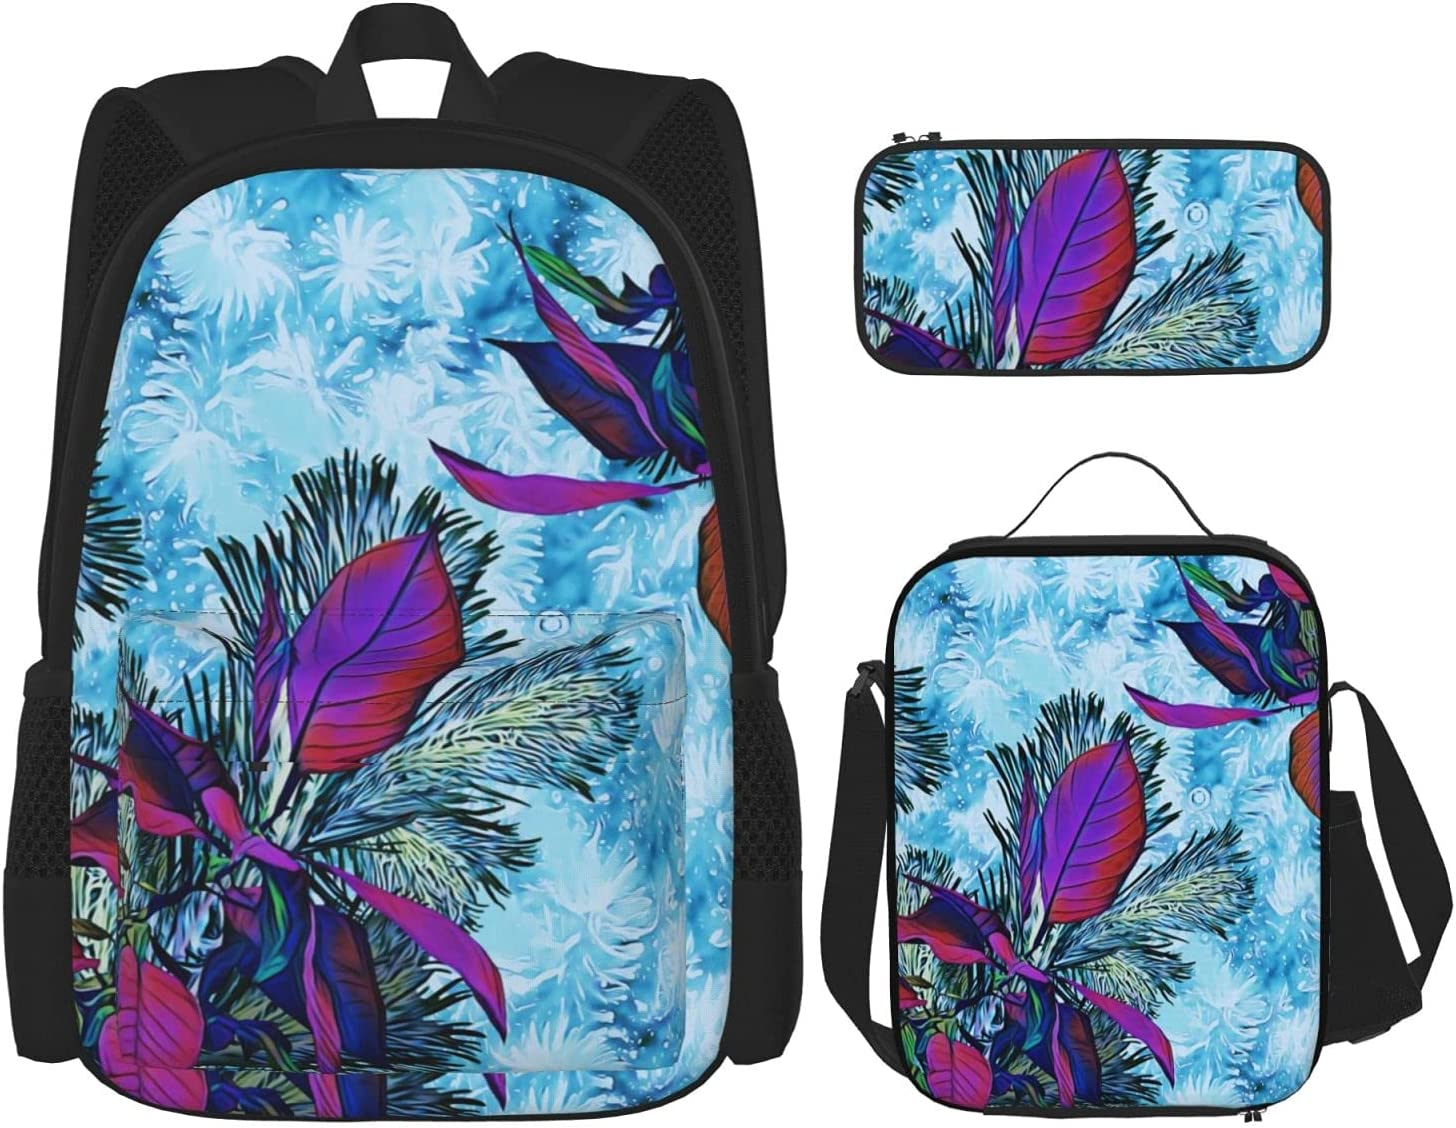 Sales Backpack Bags Purple Flowers Blue Max 44% OFF Bag Background Lunch with